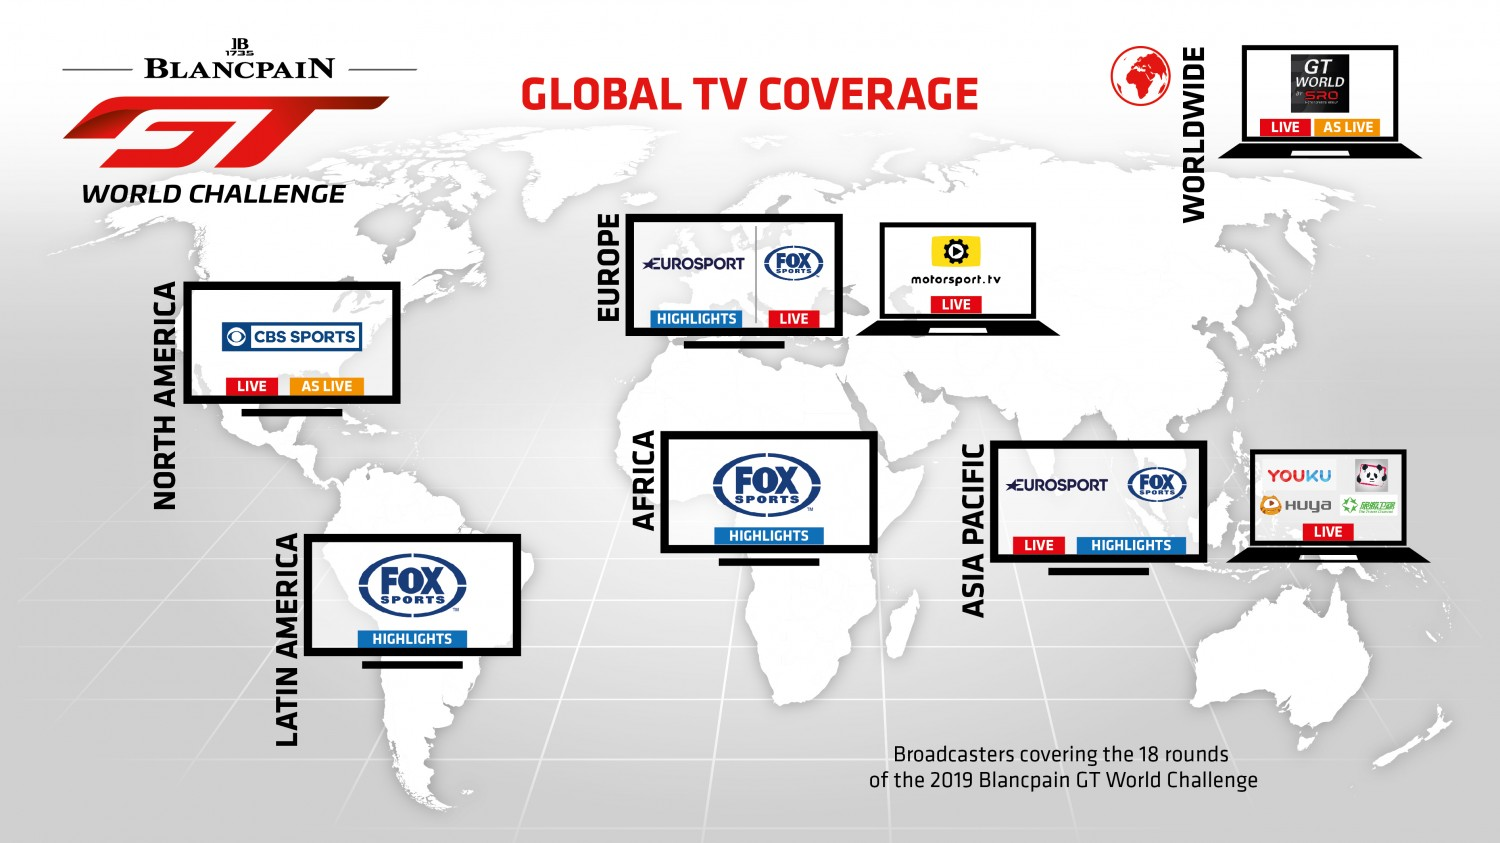 Extensive television coverage takes new Blancpain GT World Challenge to a global audience